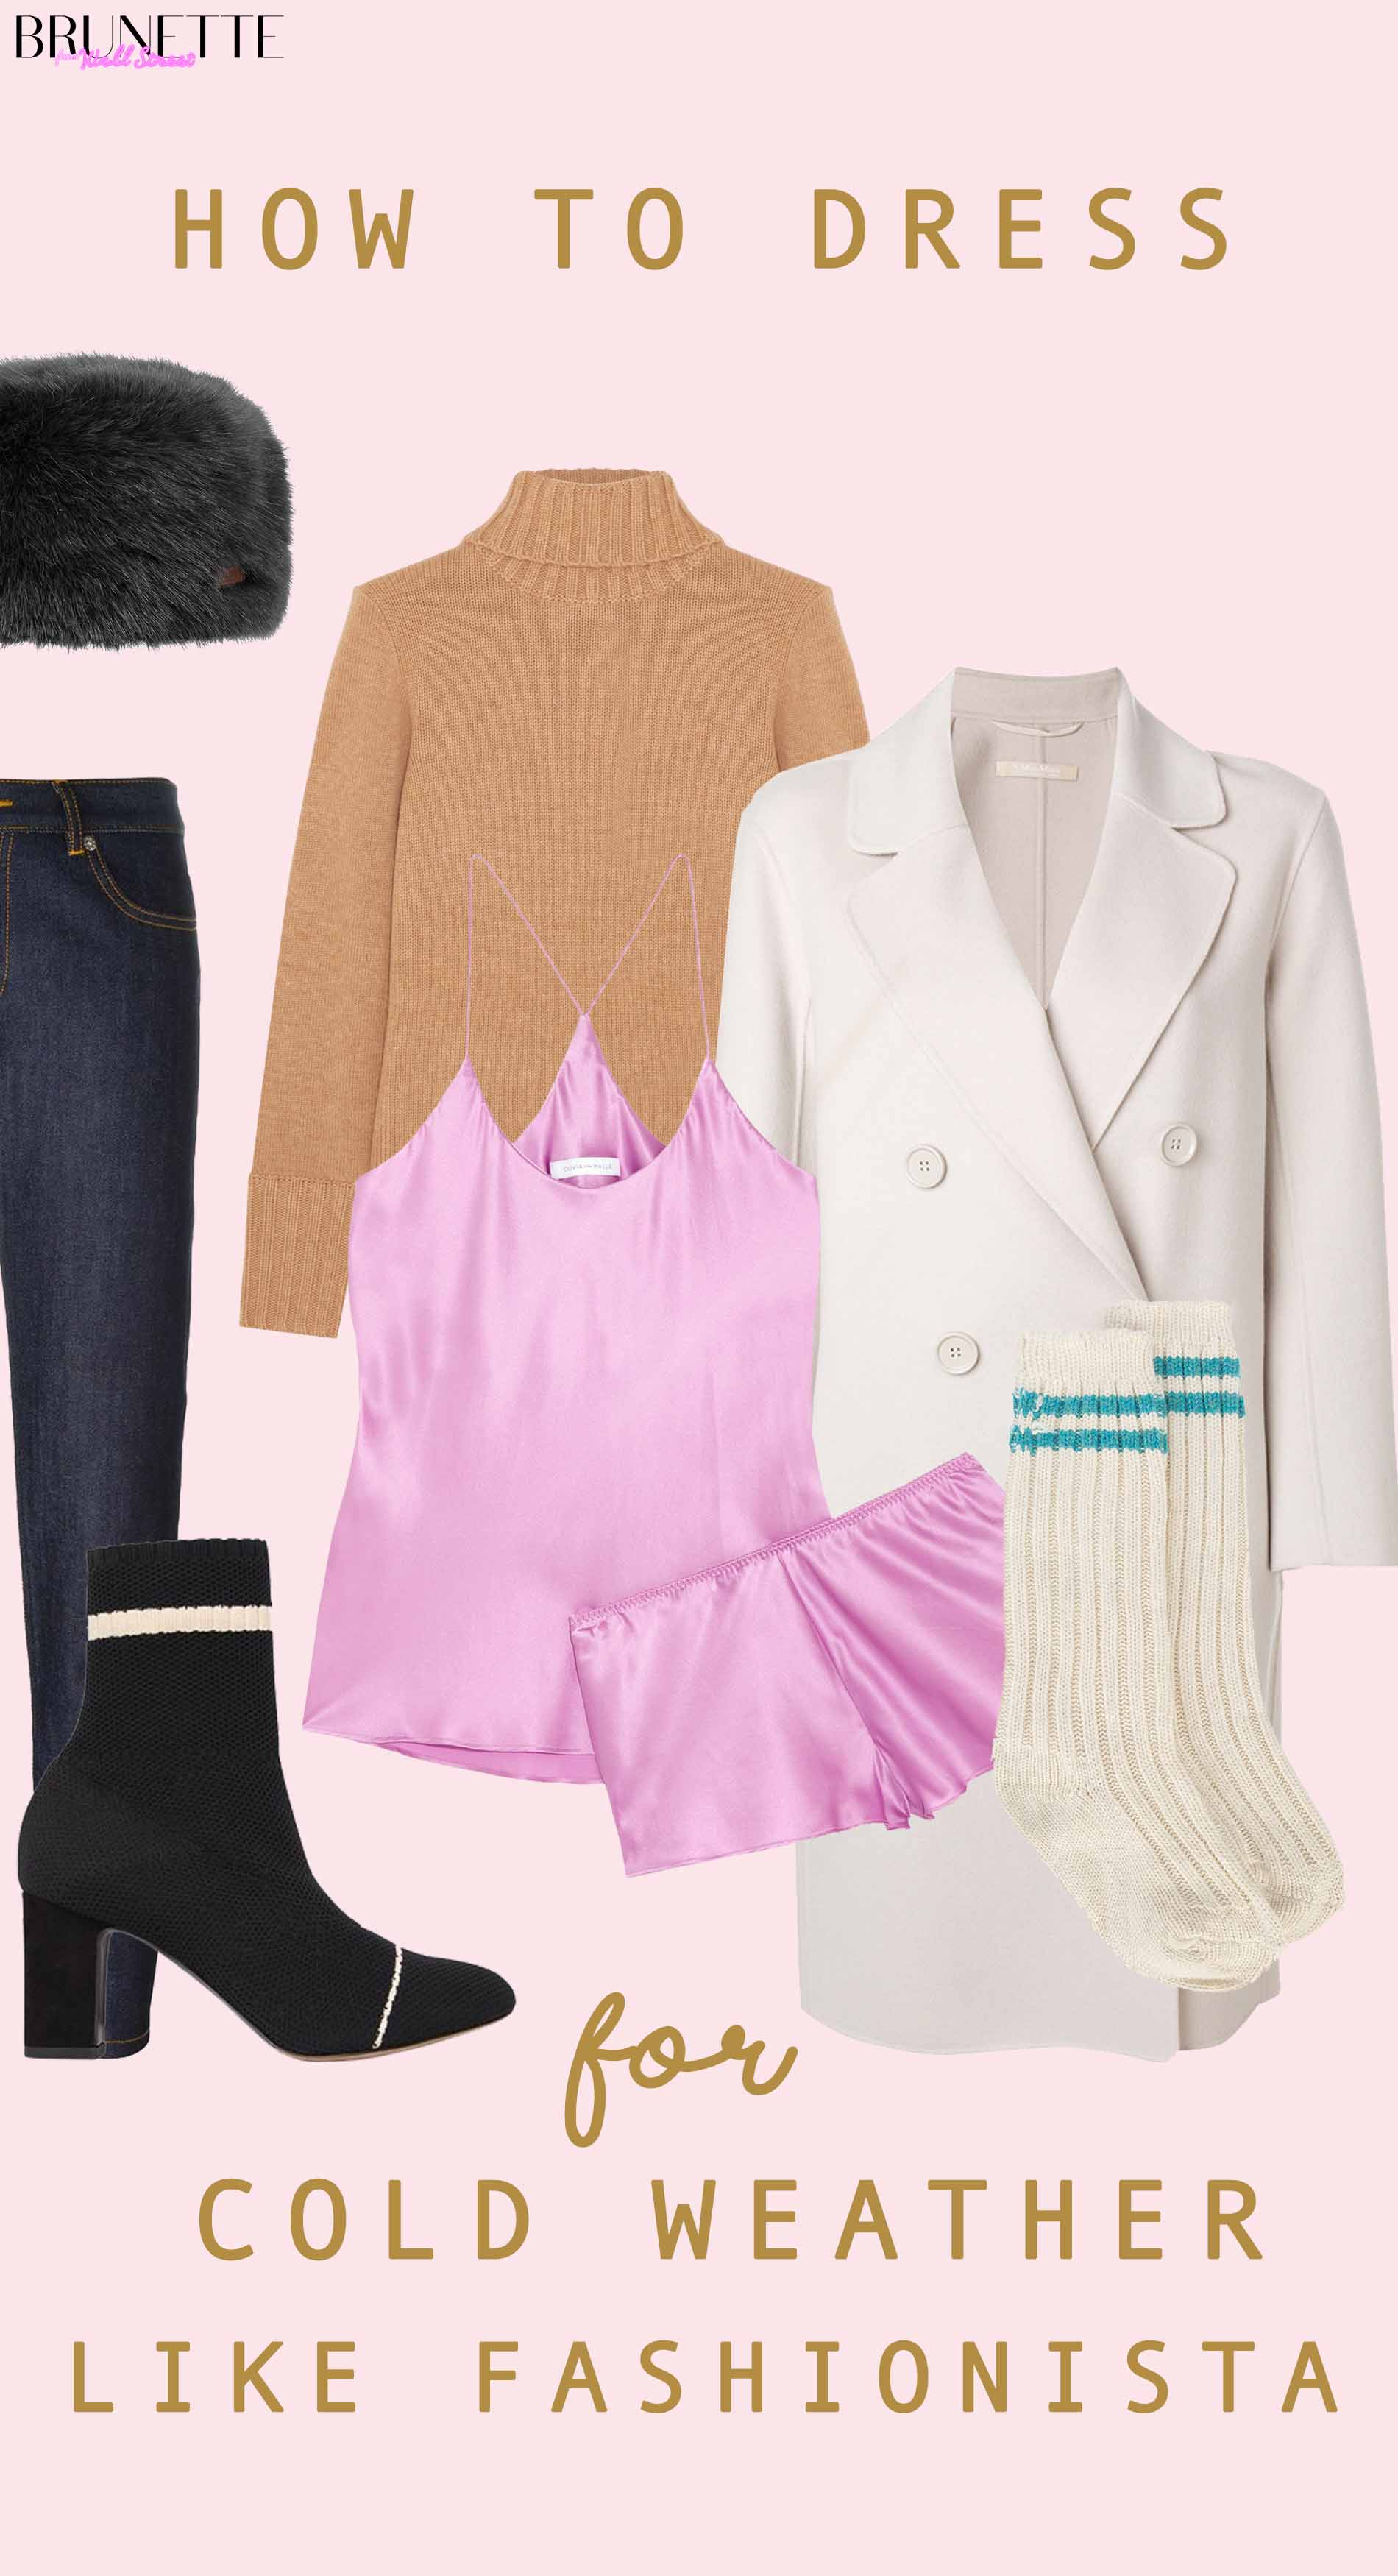 Tabhita sock boots, pink silk underwear, Max Mara coat, hat with text overlay How to dress for cold weather like fashionista